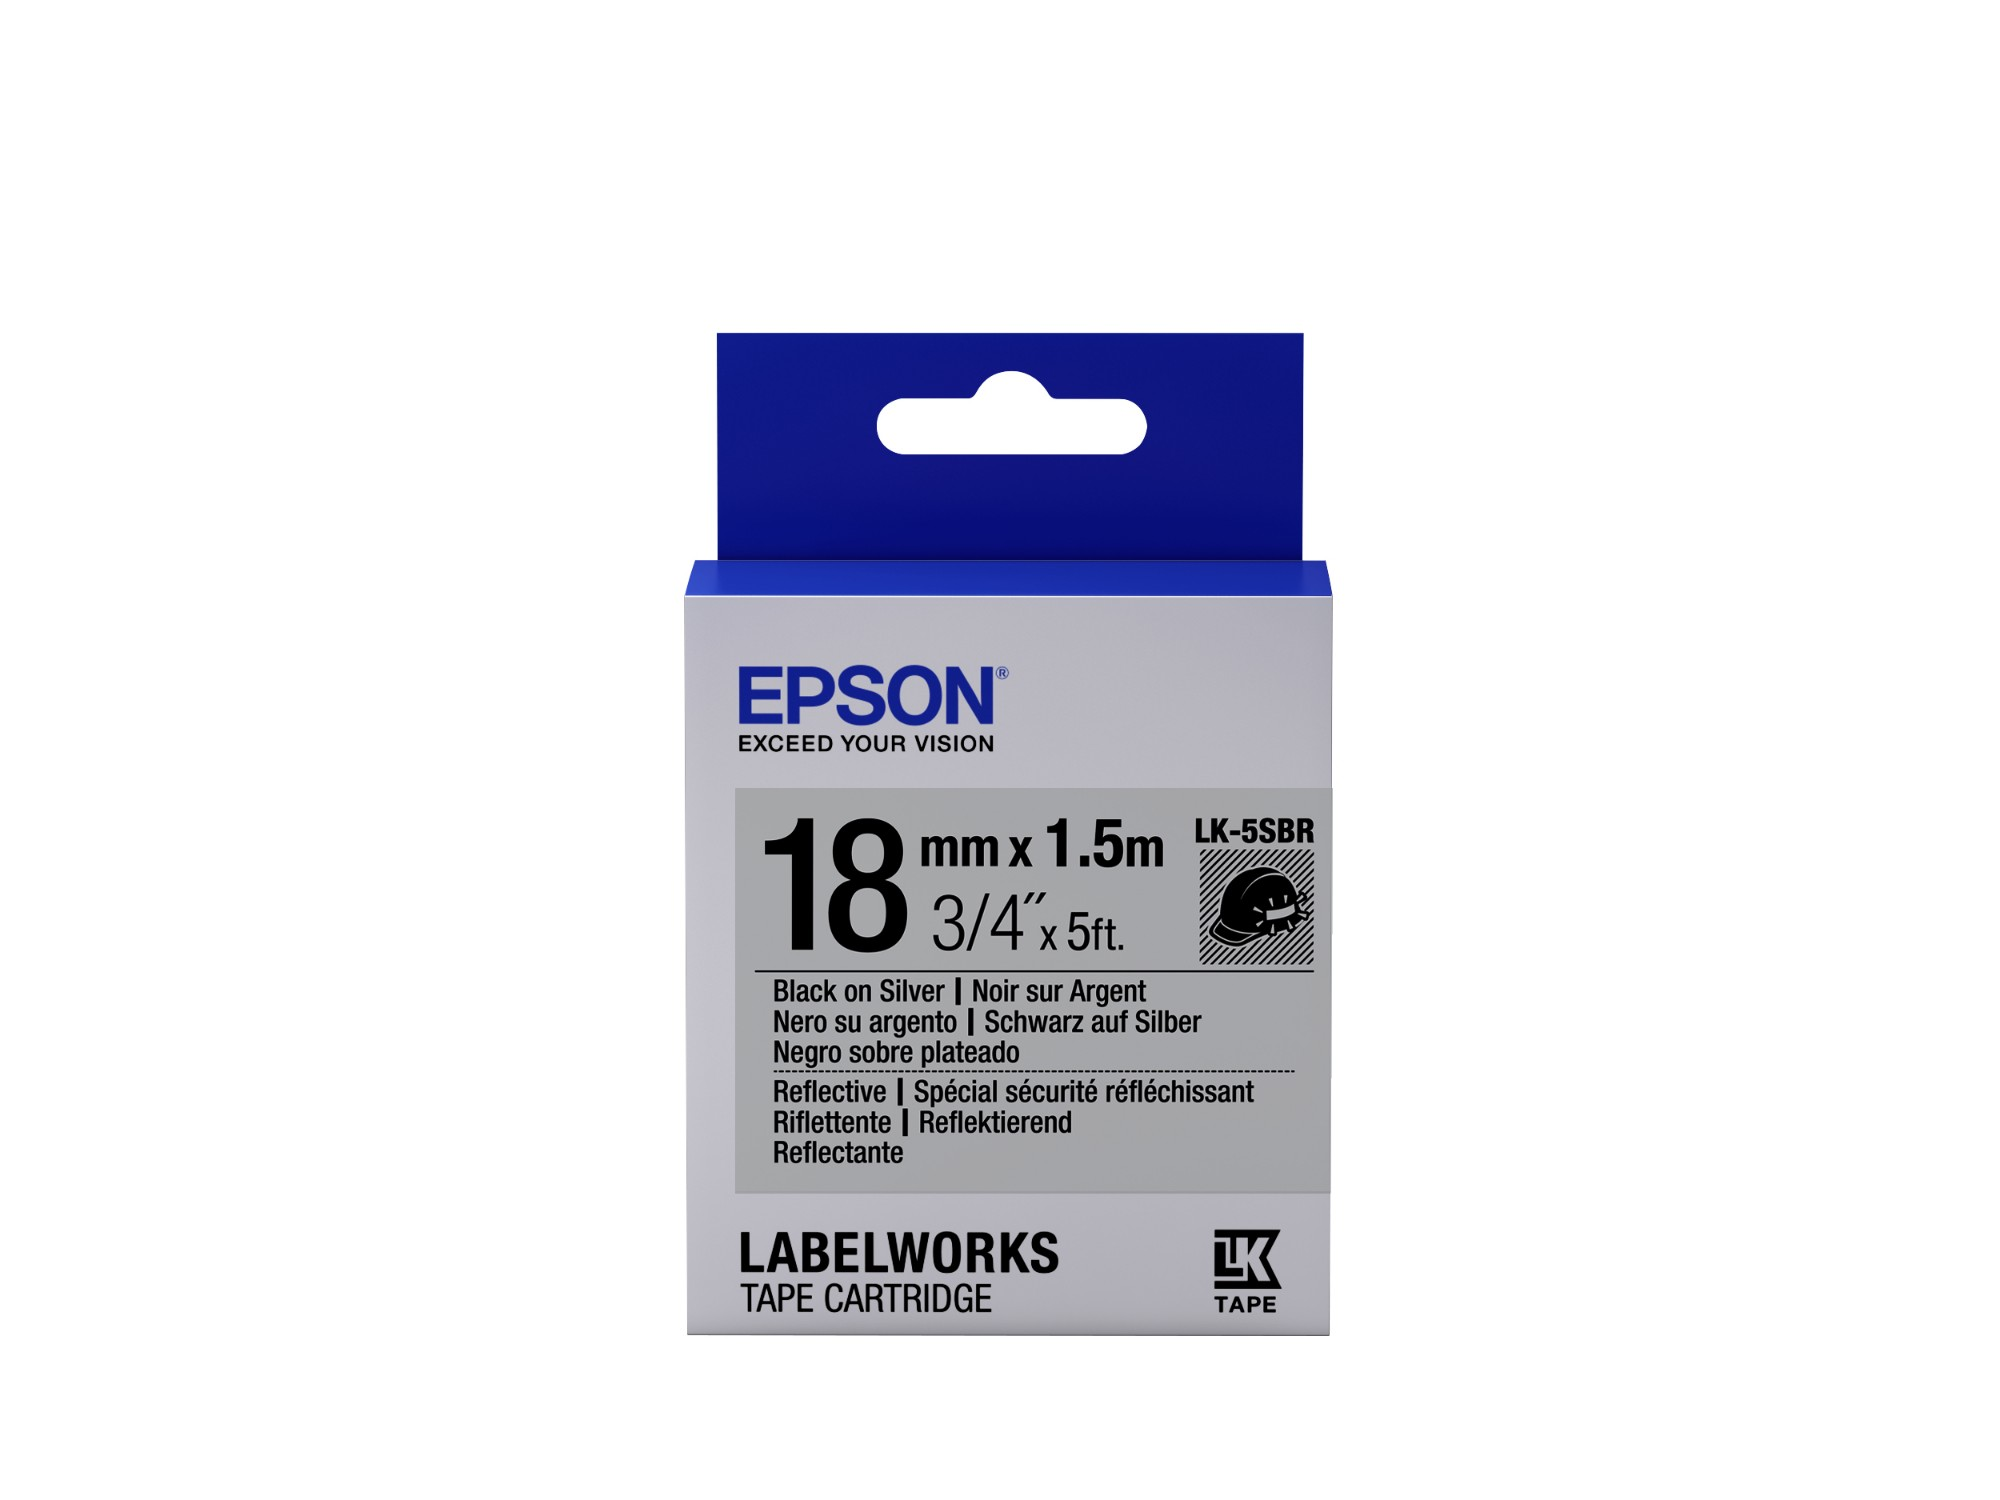 Epson Label Cartridge Reflective LK-5SBR Black/Silver 18mm (1.5m)